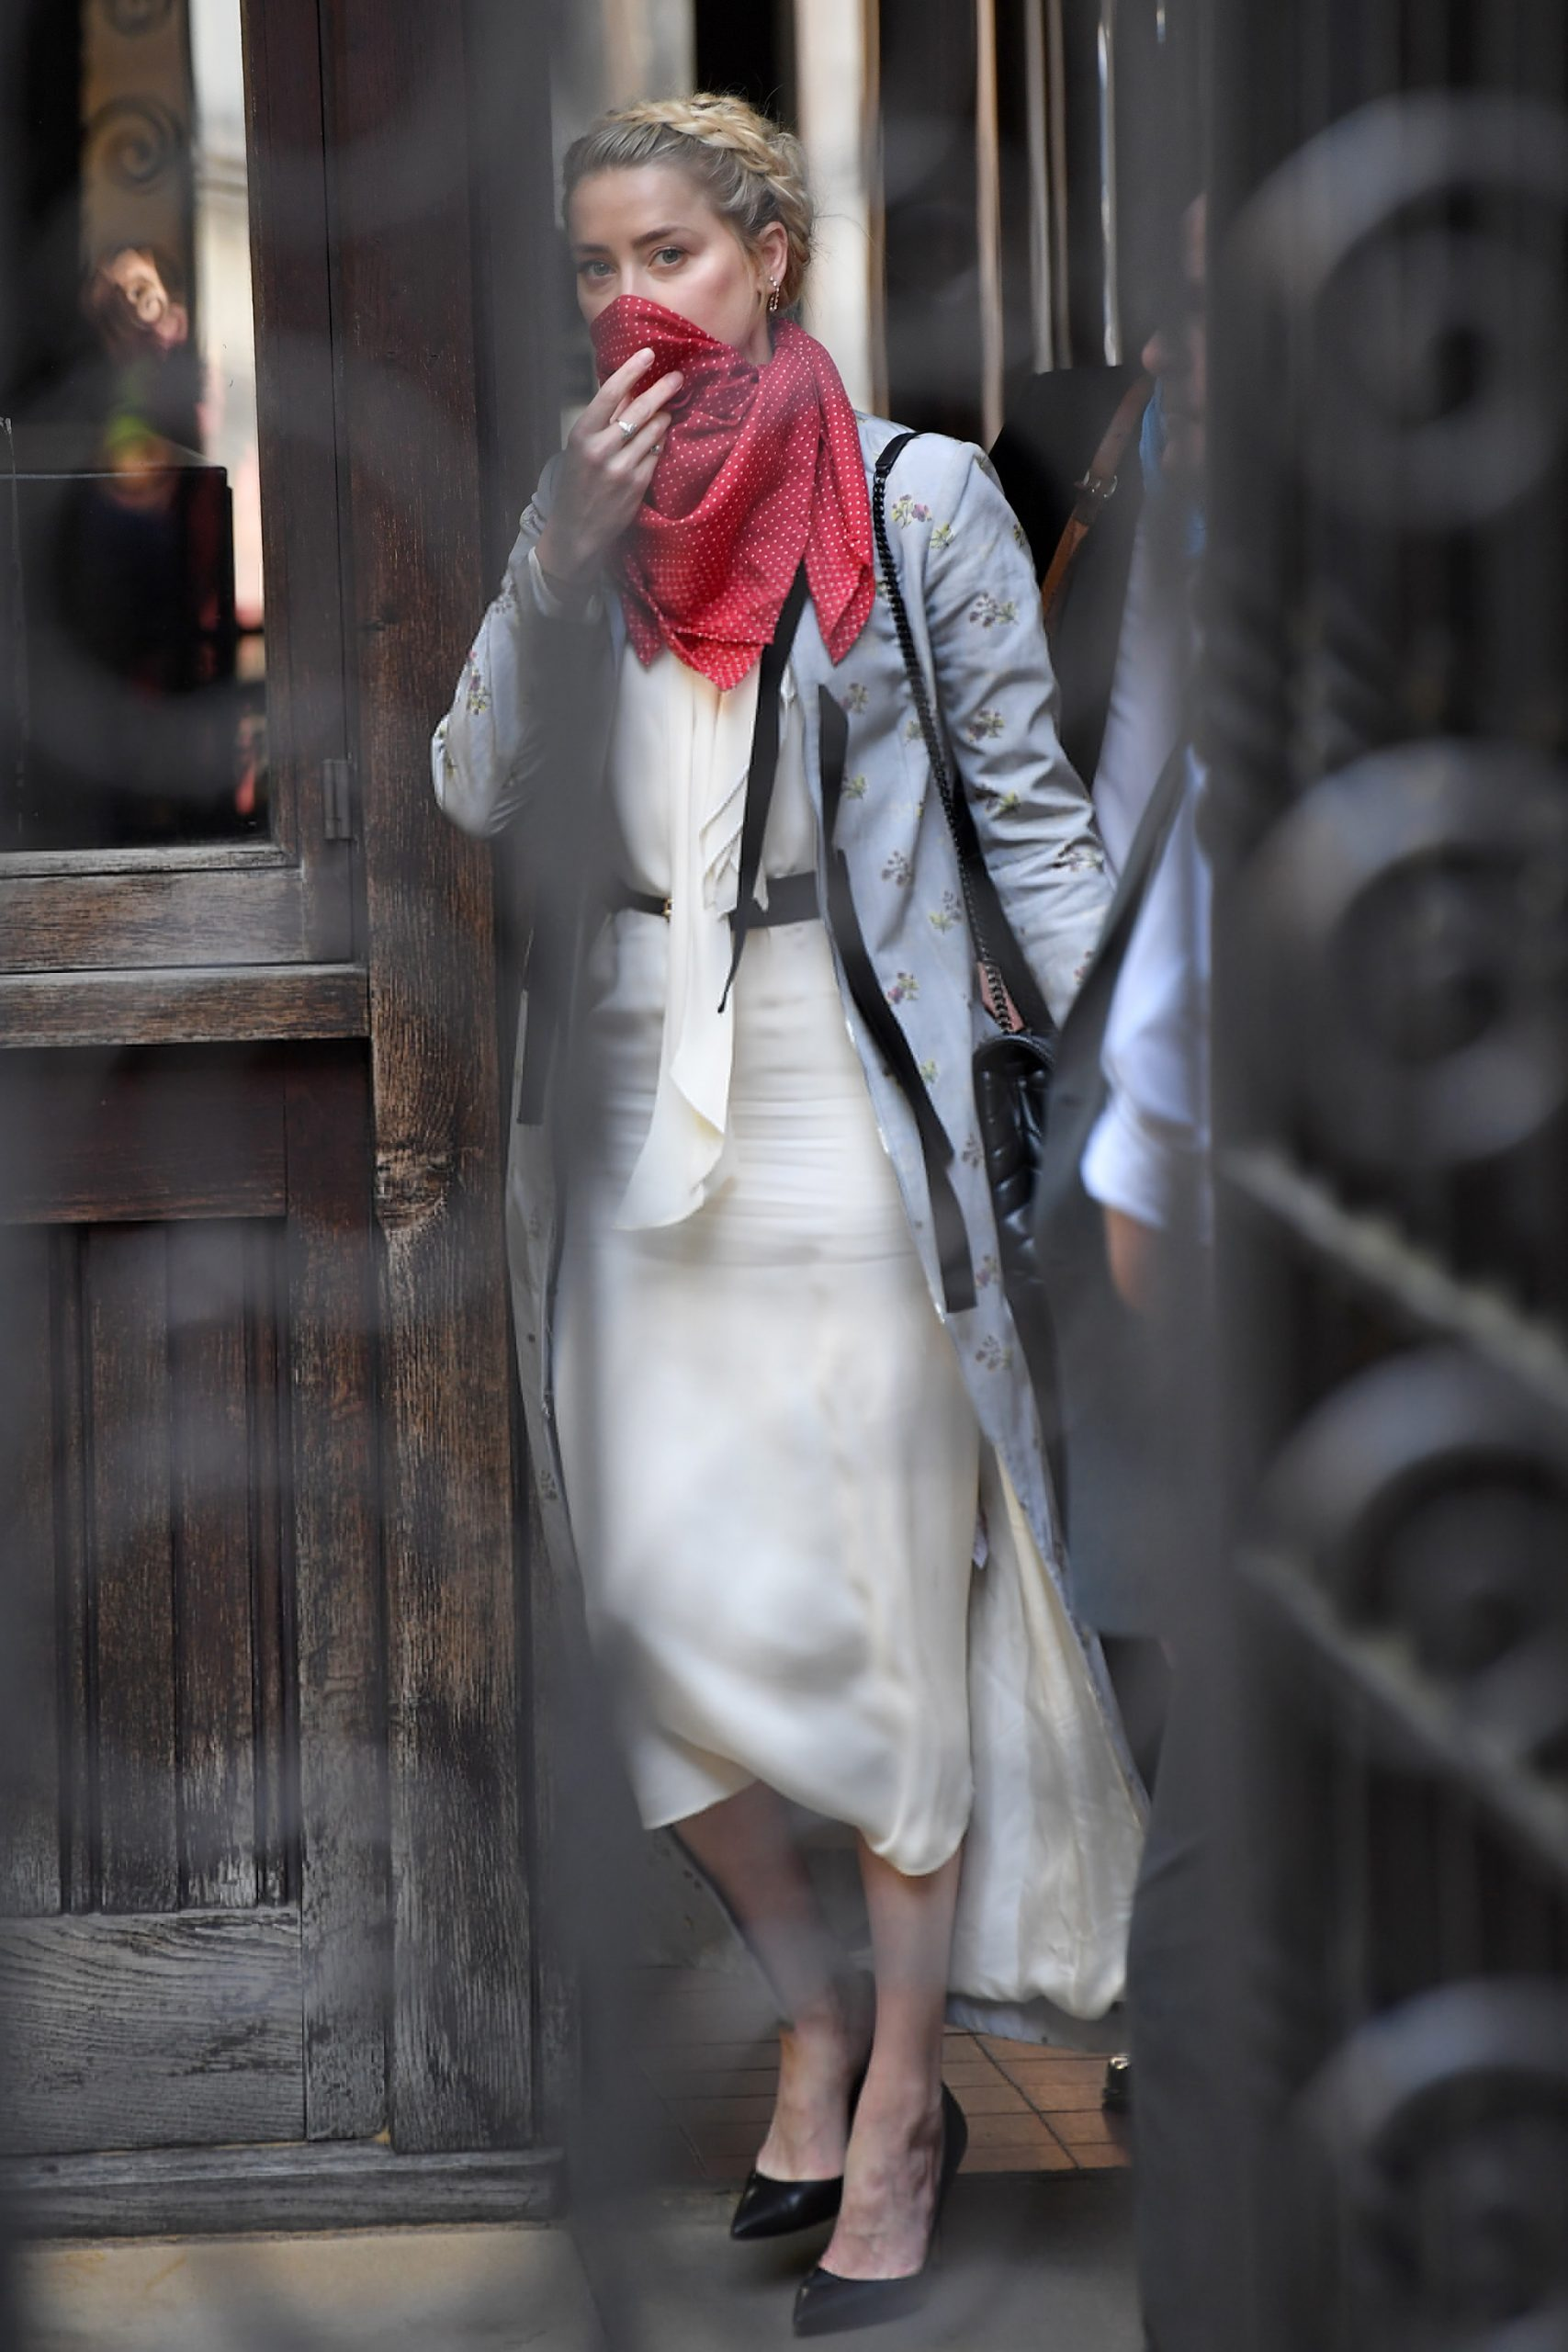 amber-heard-leaving-royal-courts-of-justice-in-london-july-21-2020